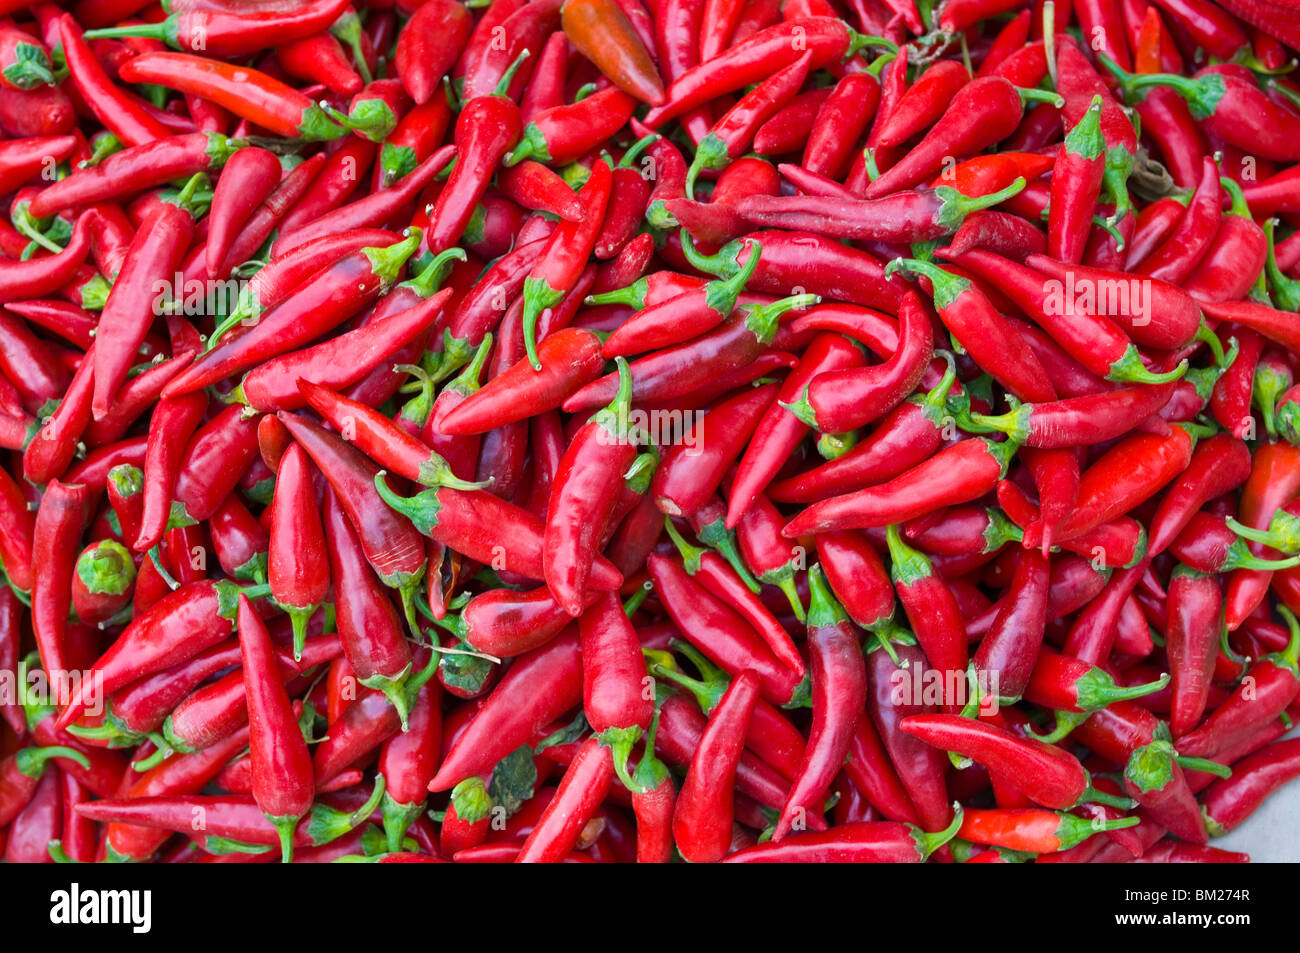 Close-up of red chilies in Nahaufnahme, Osh, Kyrgyzstan, Central Asia - Stock Image